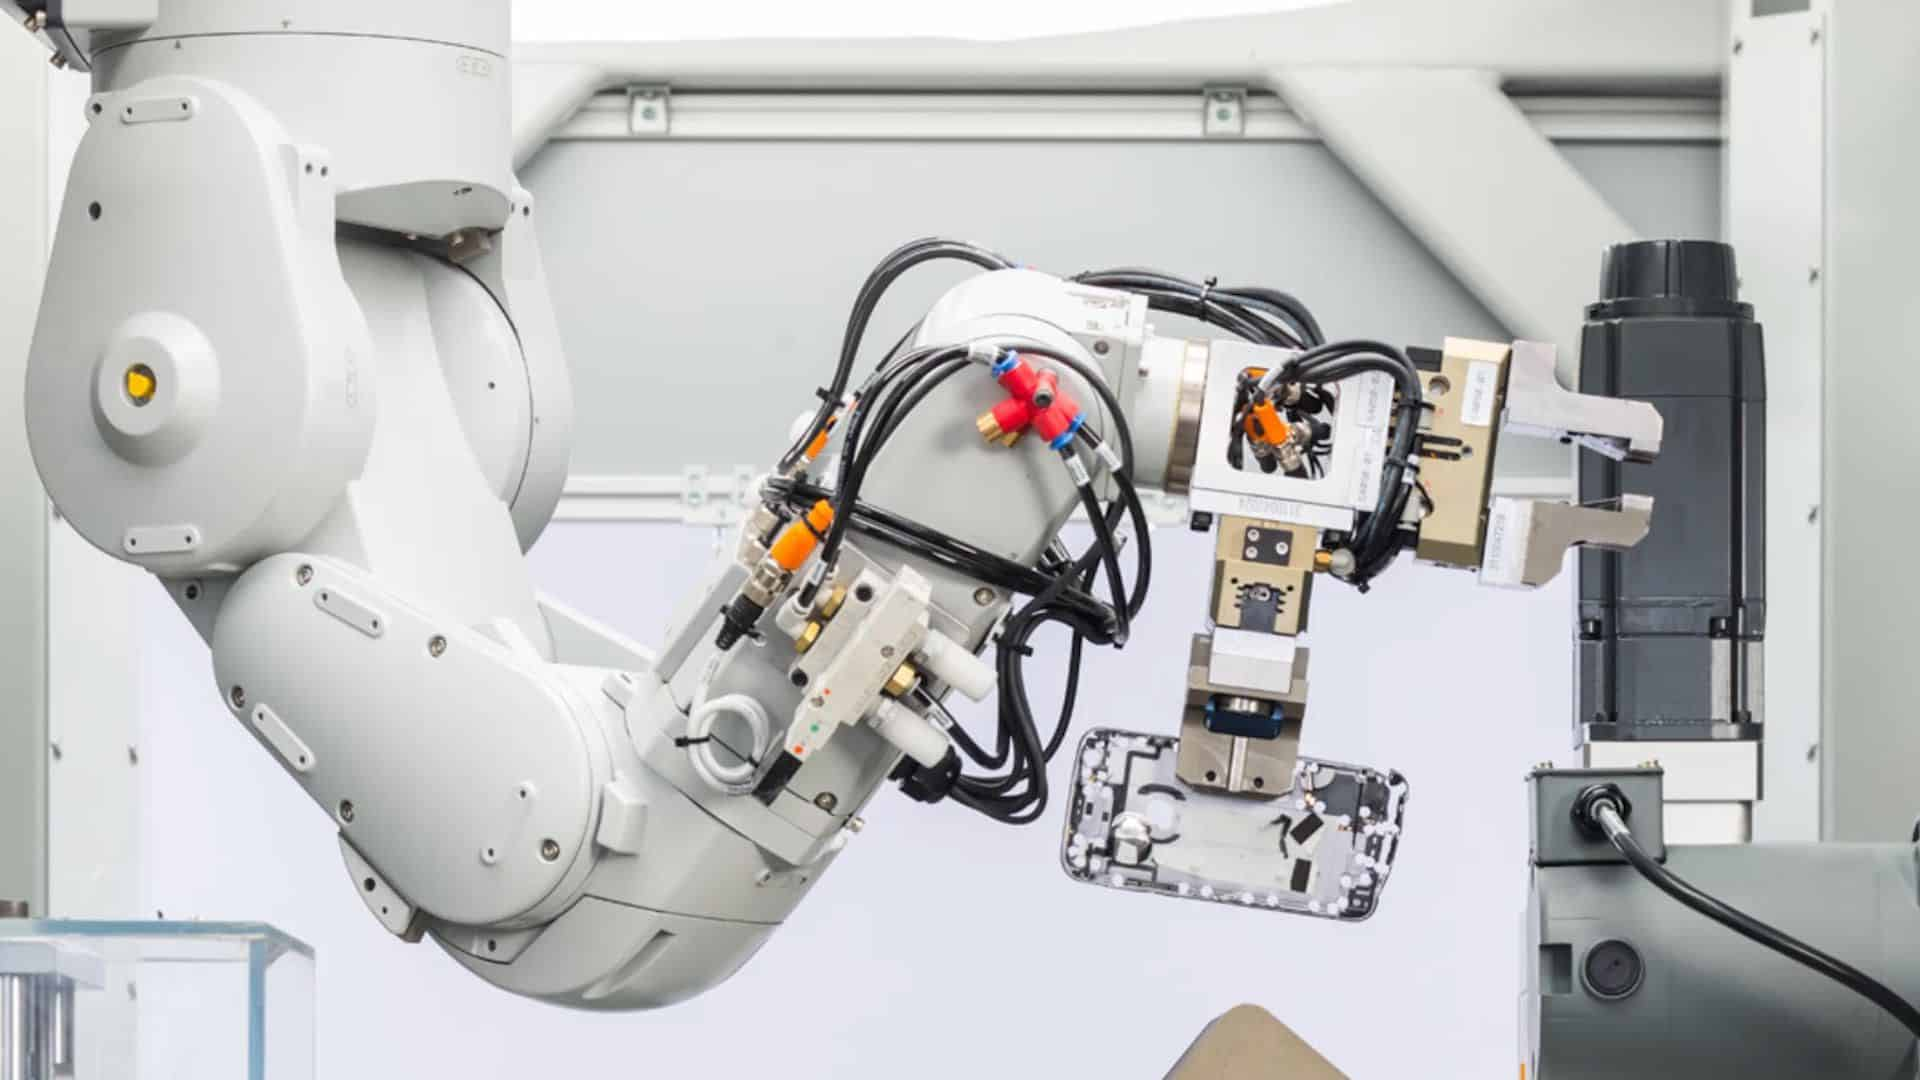 Apple's Daisy is a prototype recycling robot that can disassemble nine types of iPhone and sort the parts for recycling